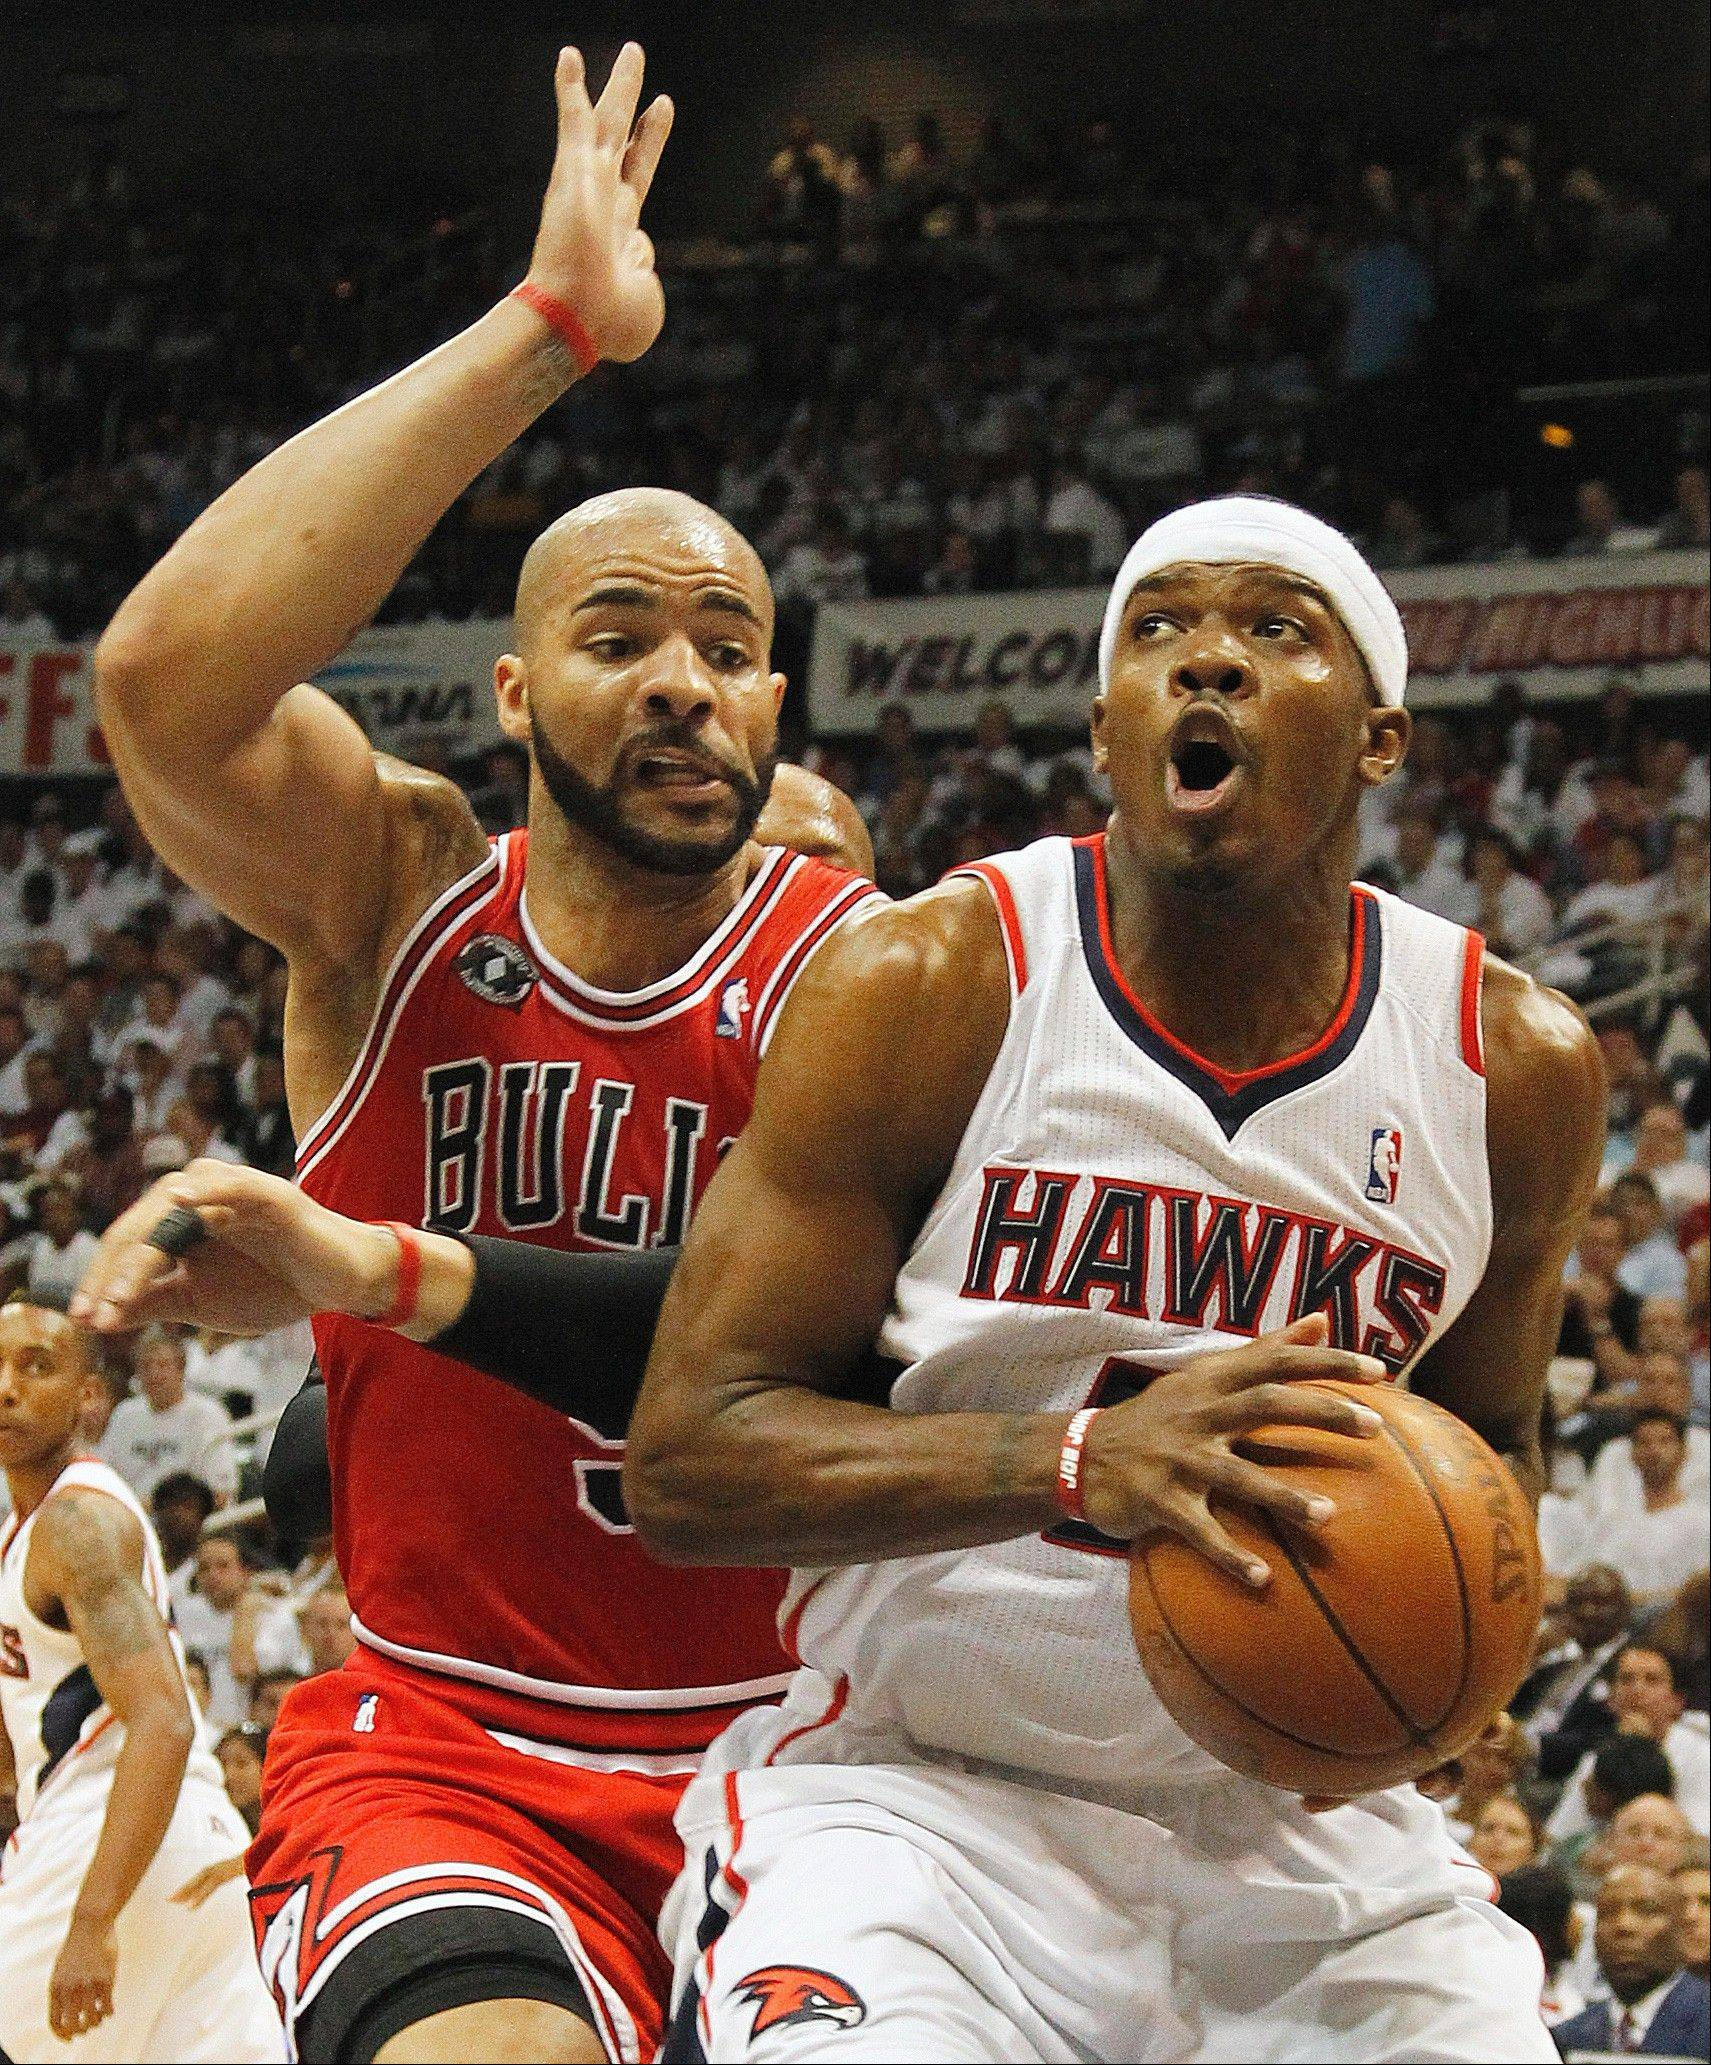 Chicago's Keith Bogans defends Atlanta's Joe Johnson in a playoff game in Atlanta in May. According to a person familiar with the deal, the Hawks and Philips Arena will be sold to California developer and pizza chain owner Alex Meruelo, but the team will remain in Atlanta